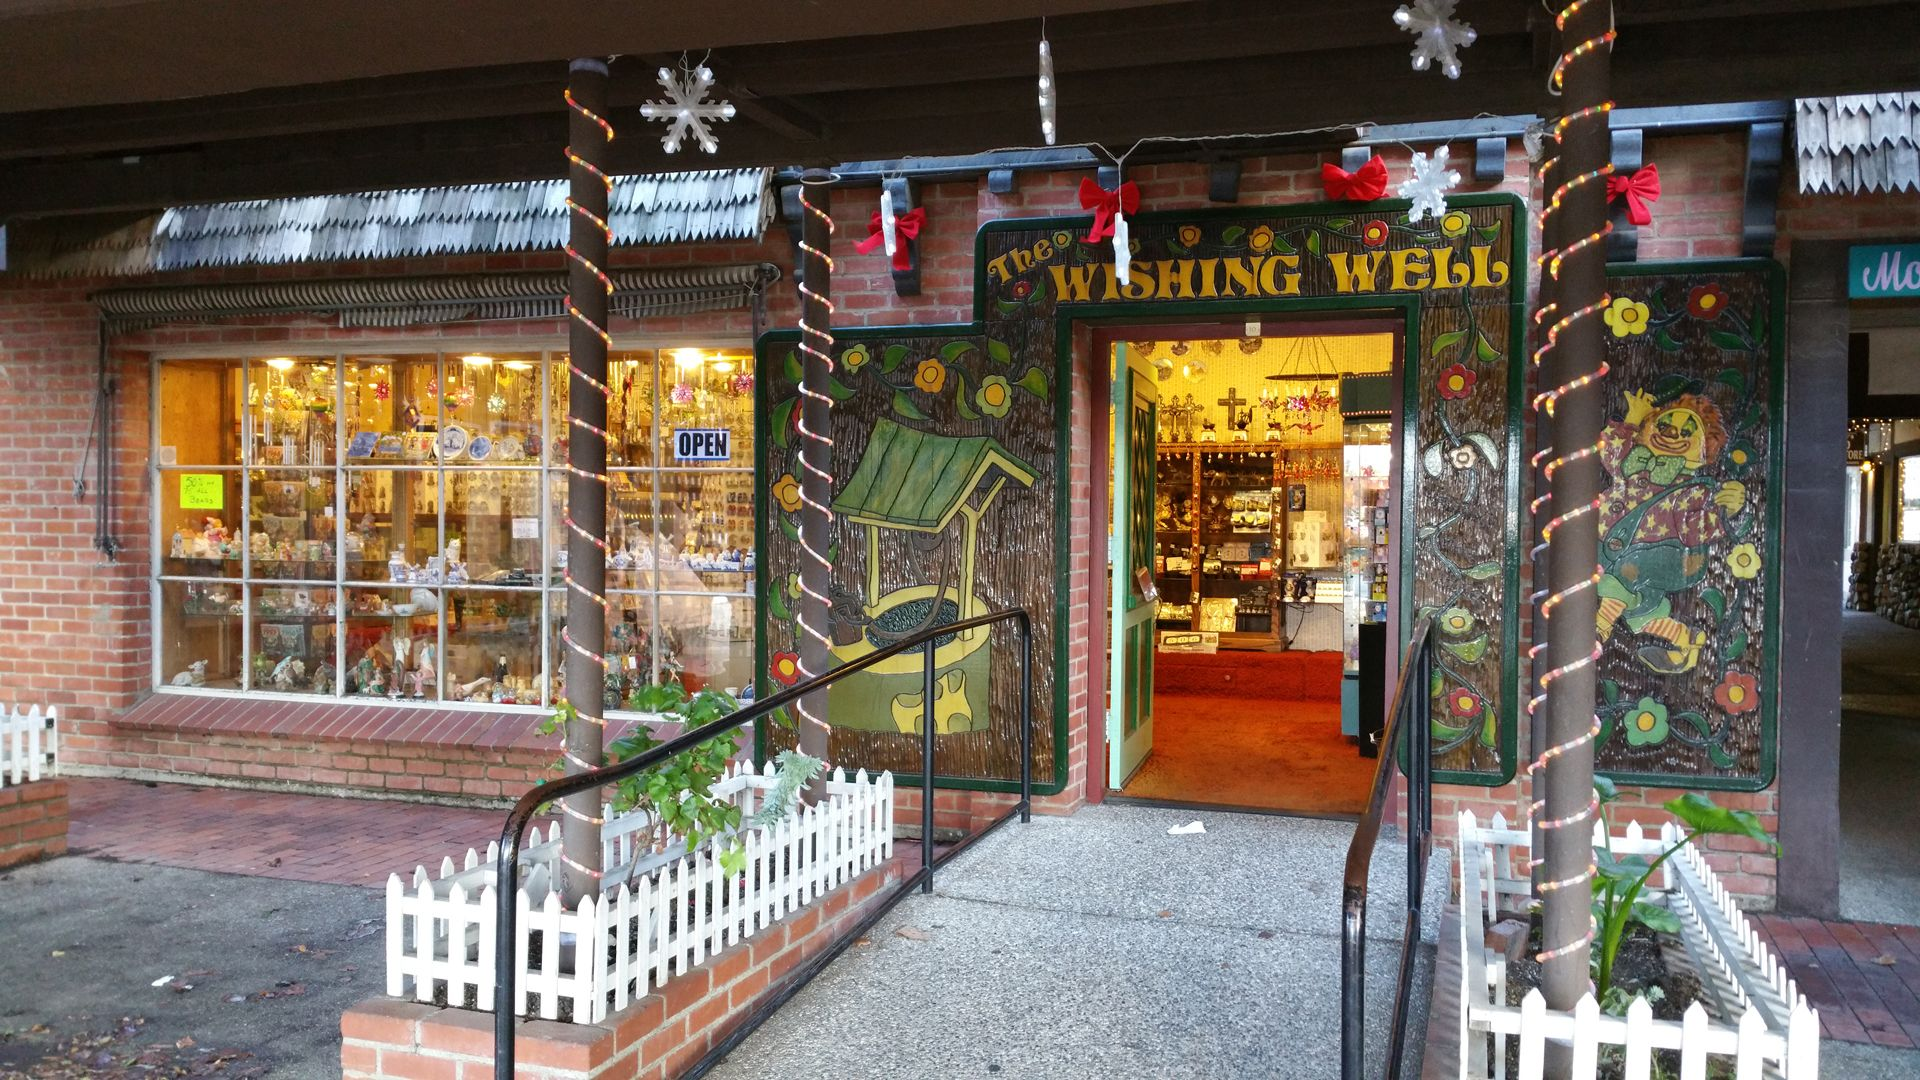 The Wishing Well Gift Shop Filled With Inexpensive Gifts And